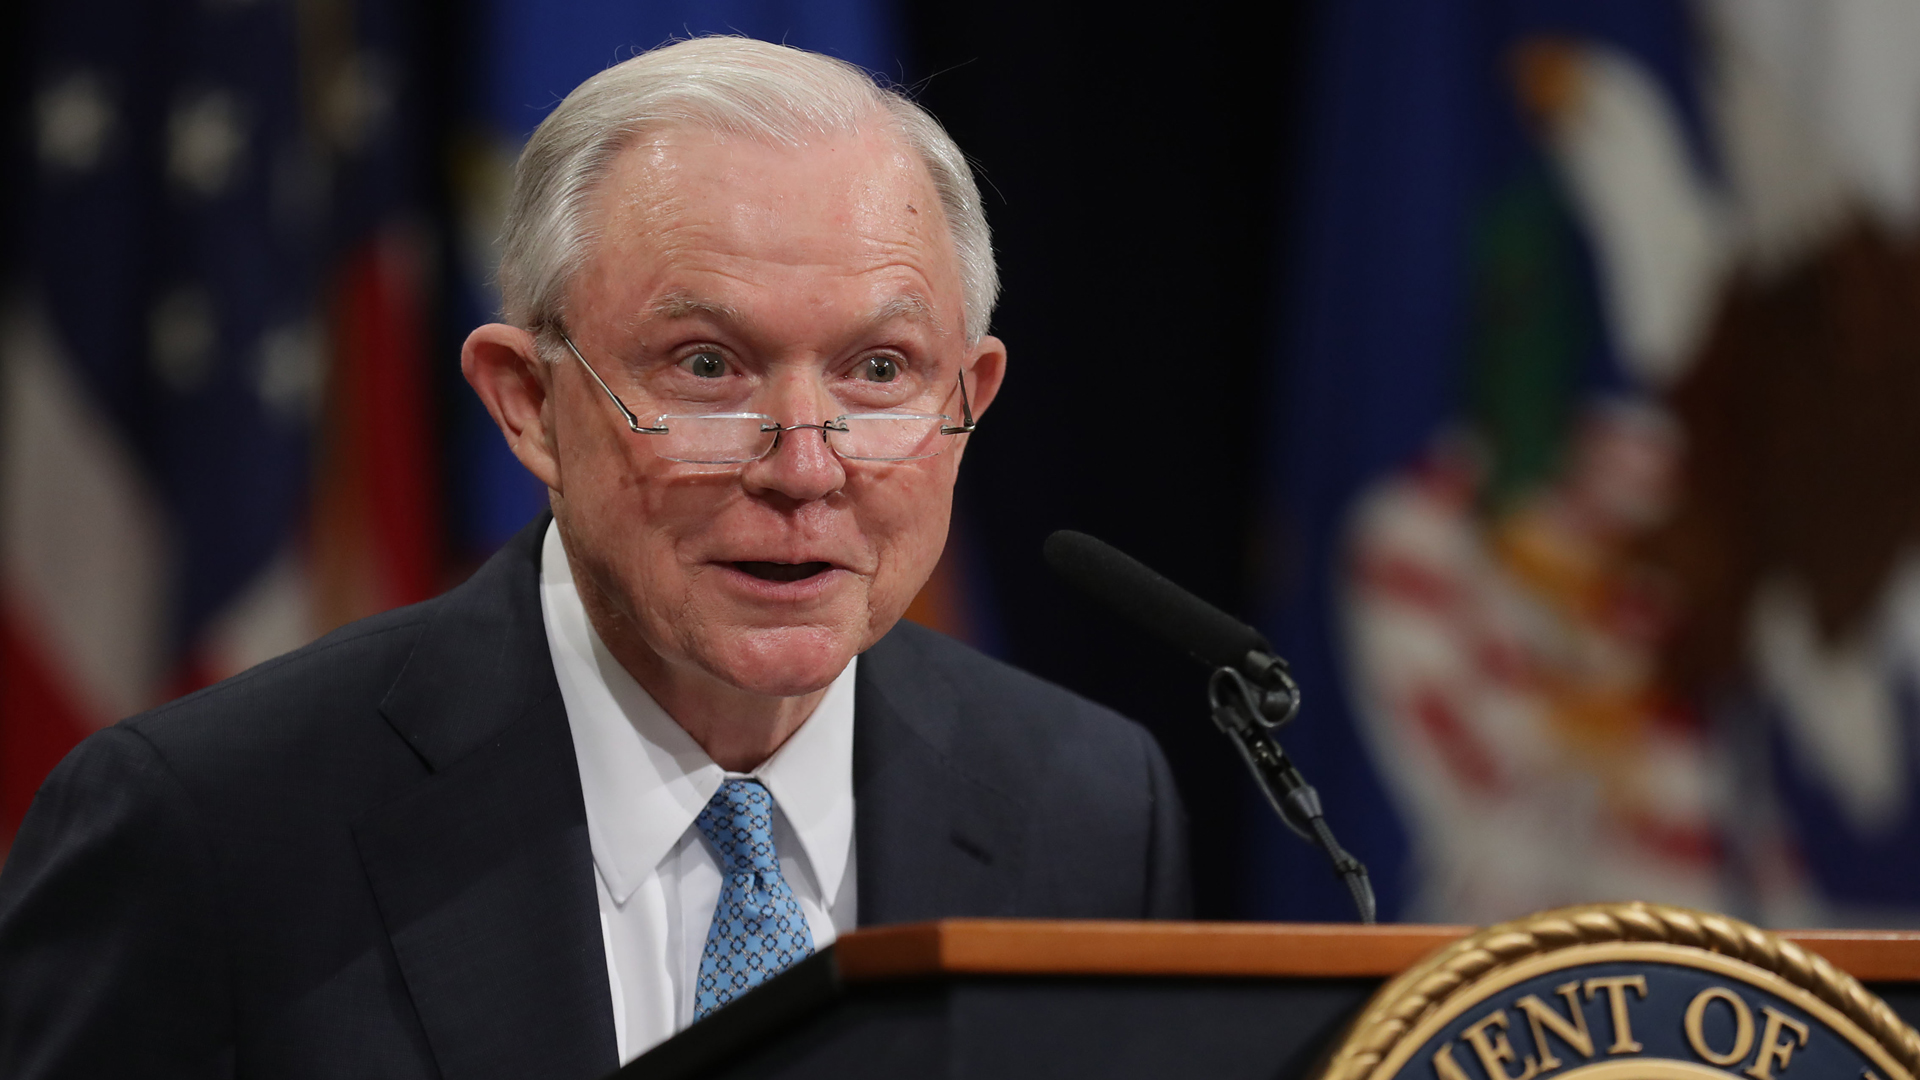 Former U.S. Attorney General Jeff Sessions delivers remarks during a farewell ceremony for Deputy Attorney General Rod Rosenstein at the Robert F. Kennedy Main Justice Building May 09, 2019, in Washington, DC. (Chip Somodevilla/Getty Images)